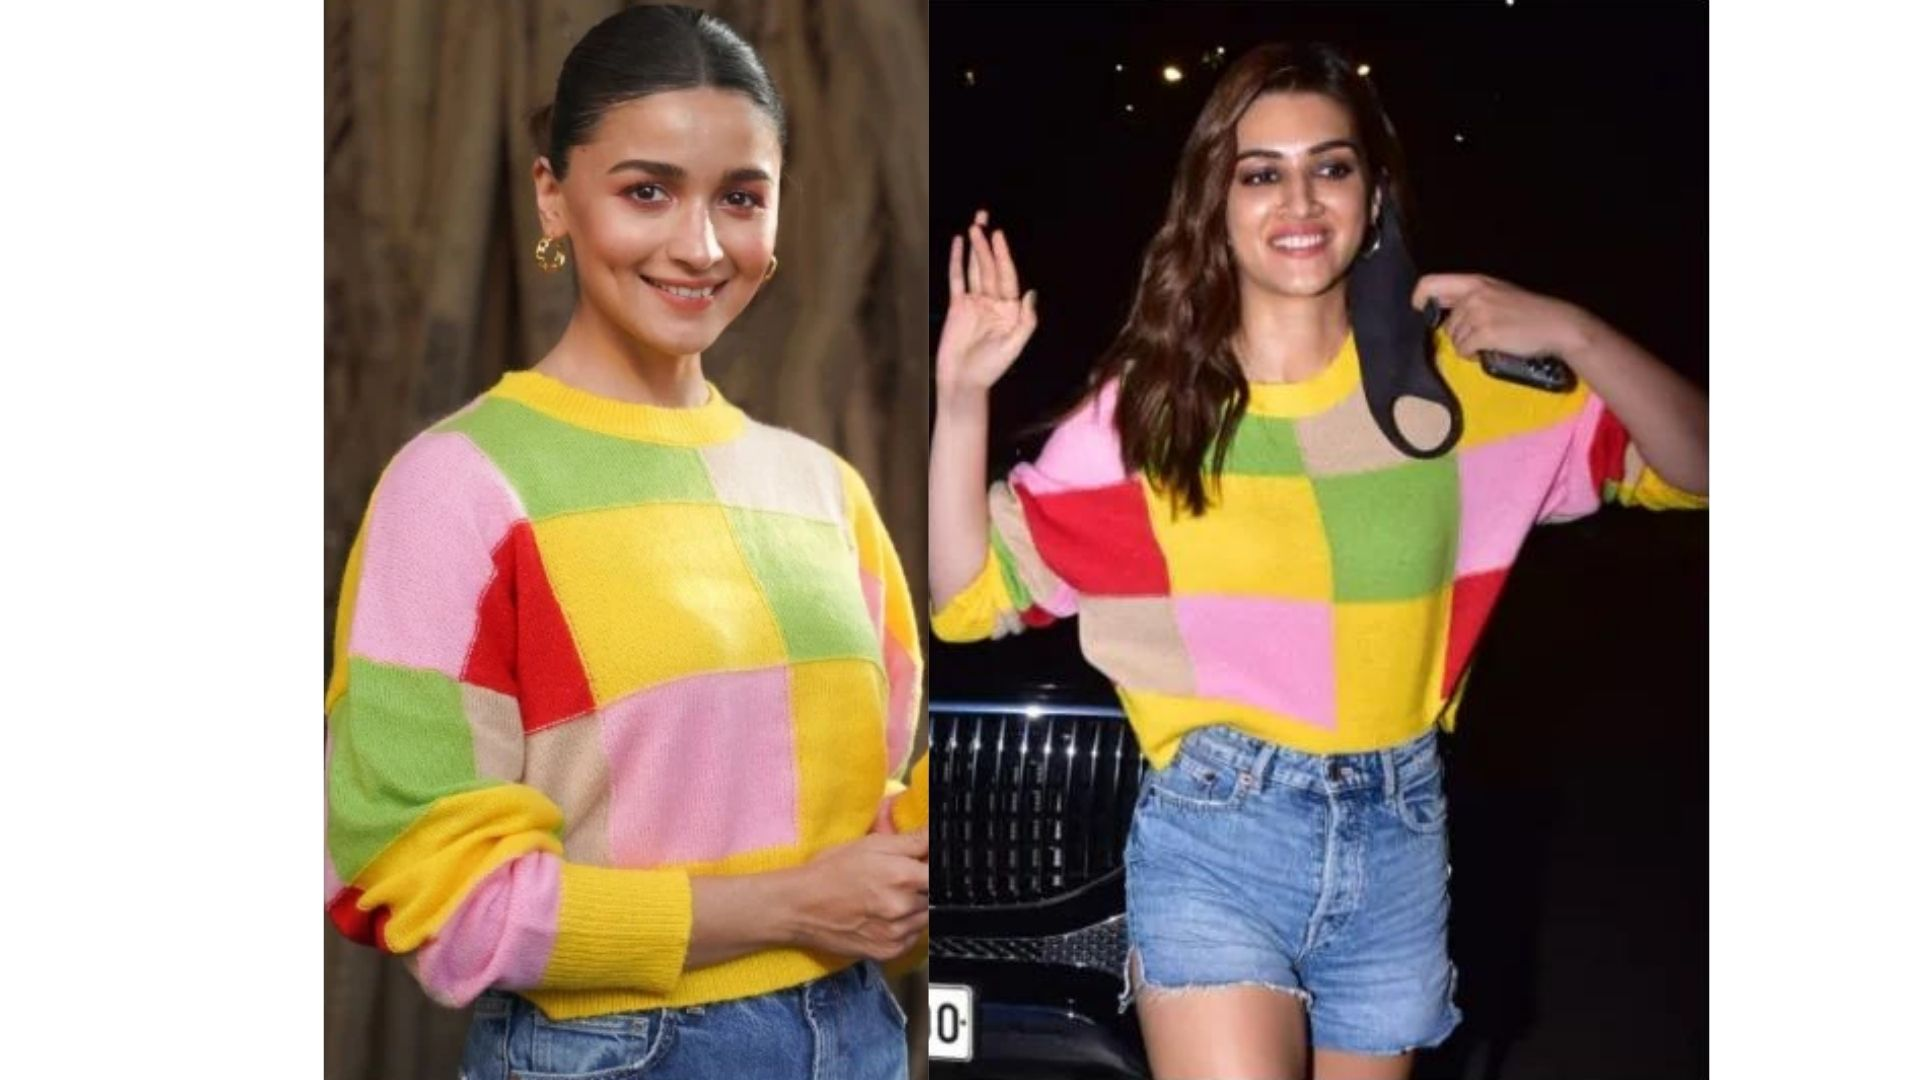 After Kriti Sanon, Alia Bhatt Nails The Yellow Sweater Look- But Who Styled It Better?